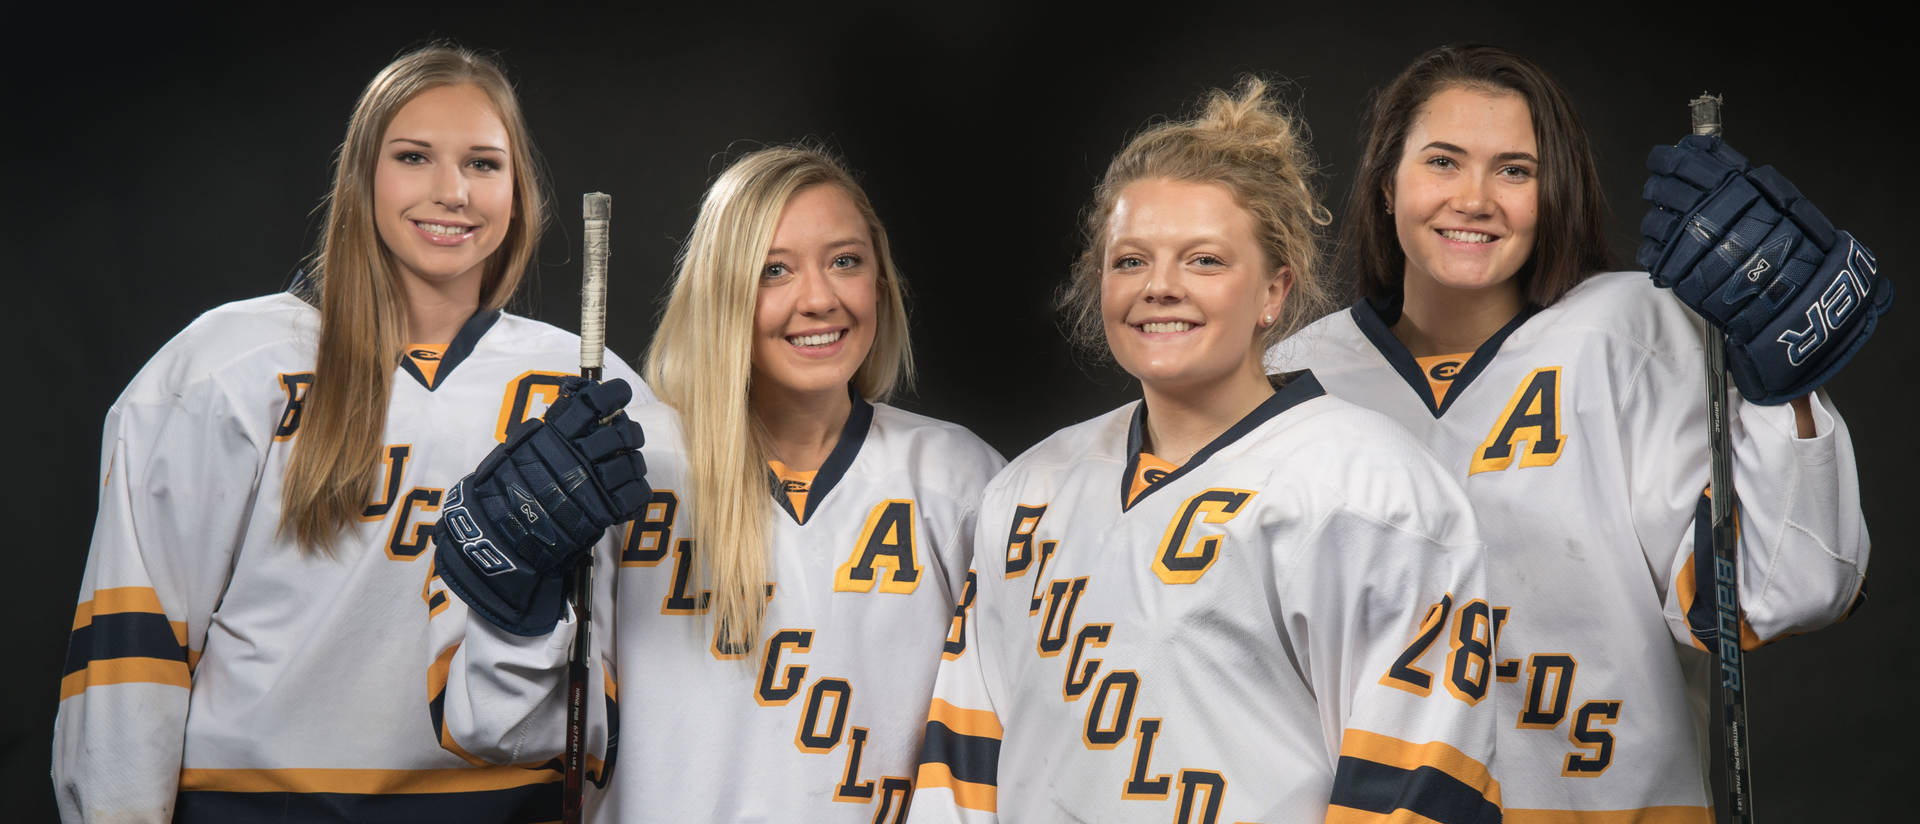 Blugold women's hockey team captains